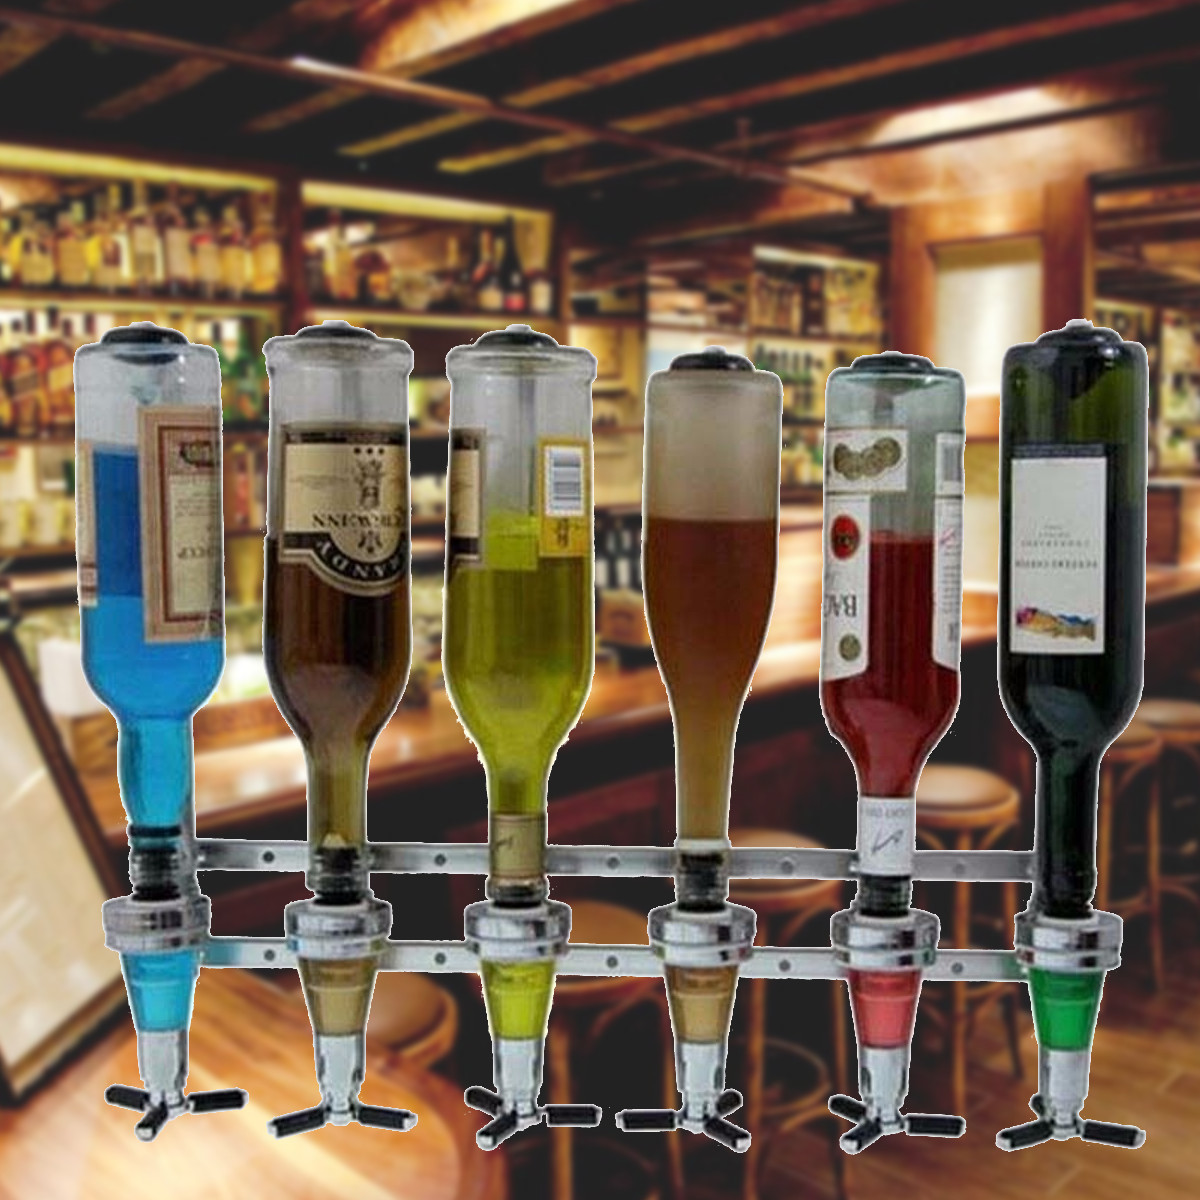 https://ae01.alicdn.com/kf/HTB1nWoGPVXXXXcMaXXXq6xXFXXX6/Wall-Mounted-Wine-Liquor-Drinks-Dispenser-Home-font-b-Bar-b-font-Butler-6-Bottles-font.jpg